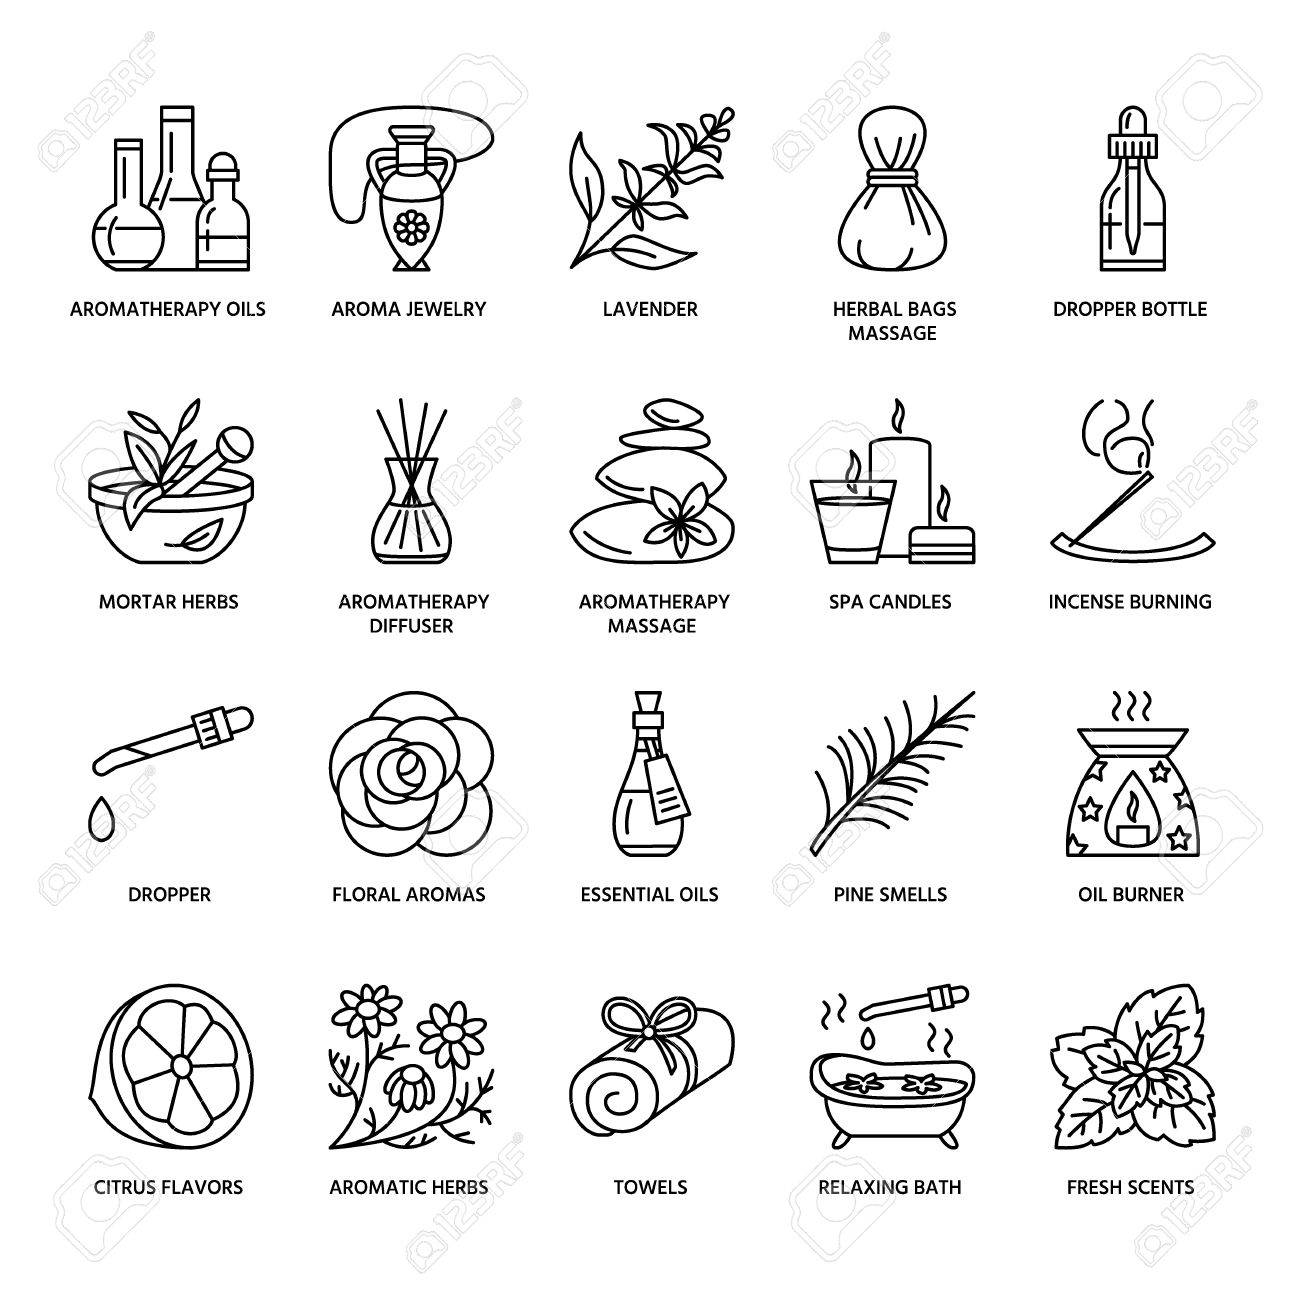 Modern vector line icons of aromatherapy and essential oils. Elements - aromatherapy diffuser, oil burner, spa candles, incense sticks. Linear pictogram with editable strokes for aromatherapy salon. - 66481866